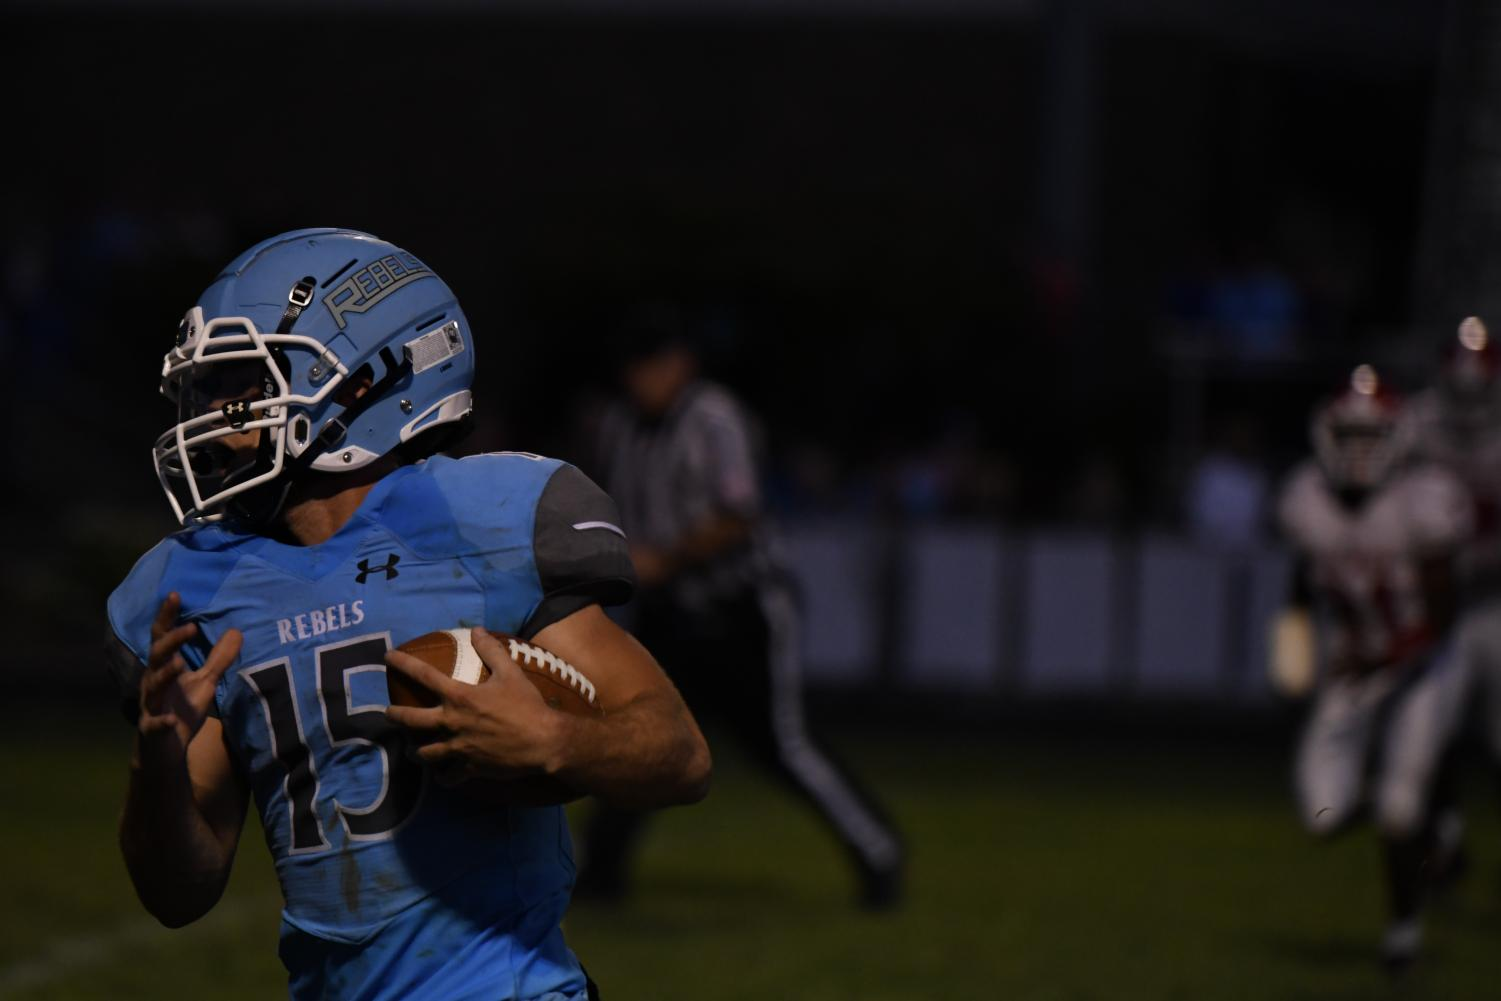 Boone senior Eli Rossi runs with the ball during the football game at Boone County High School on Aug. 23.